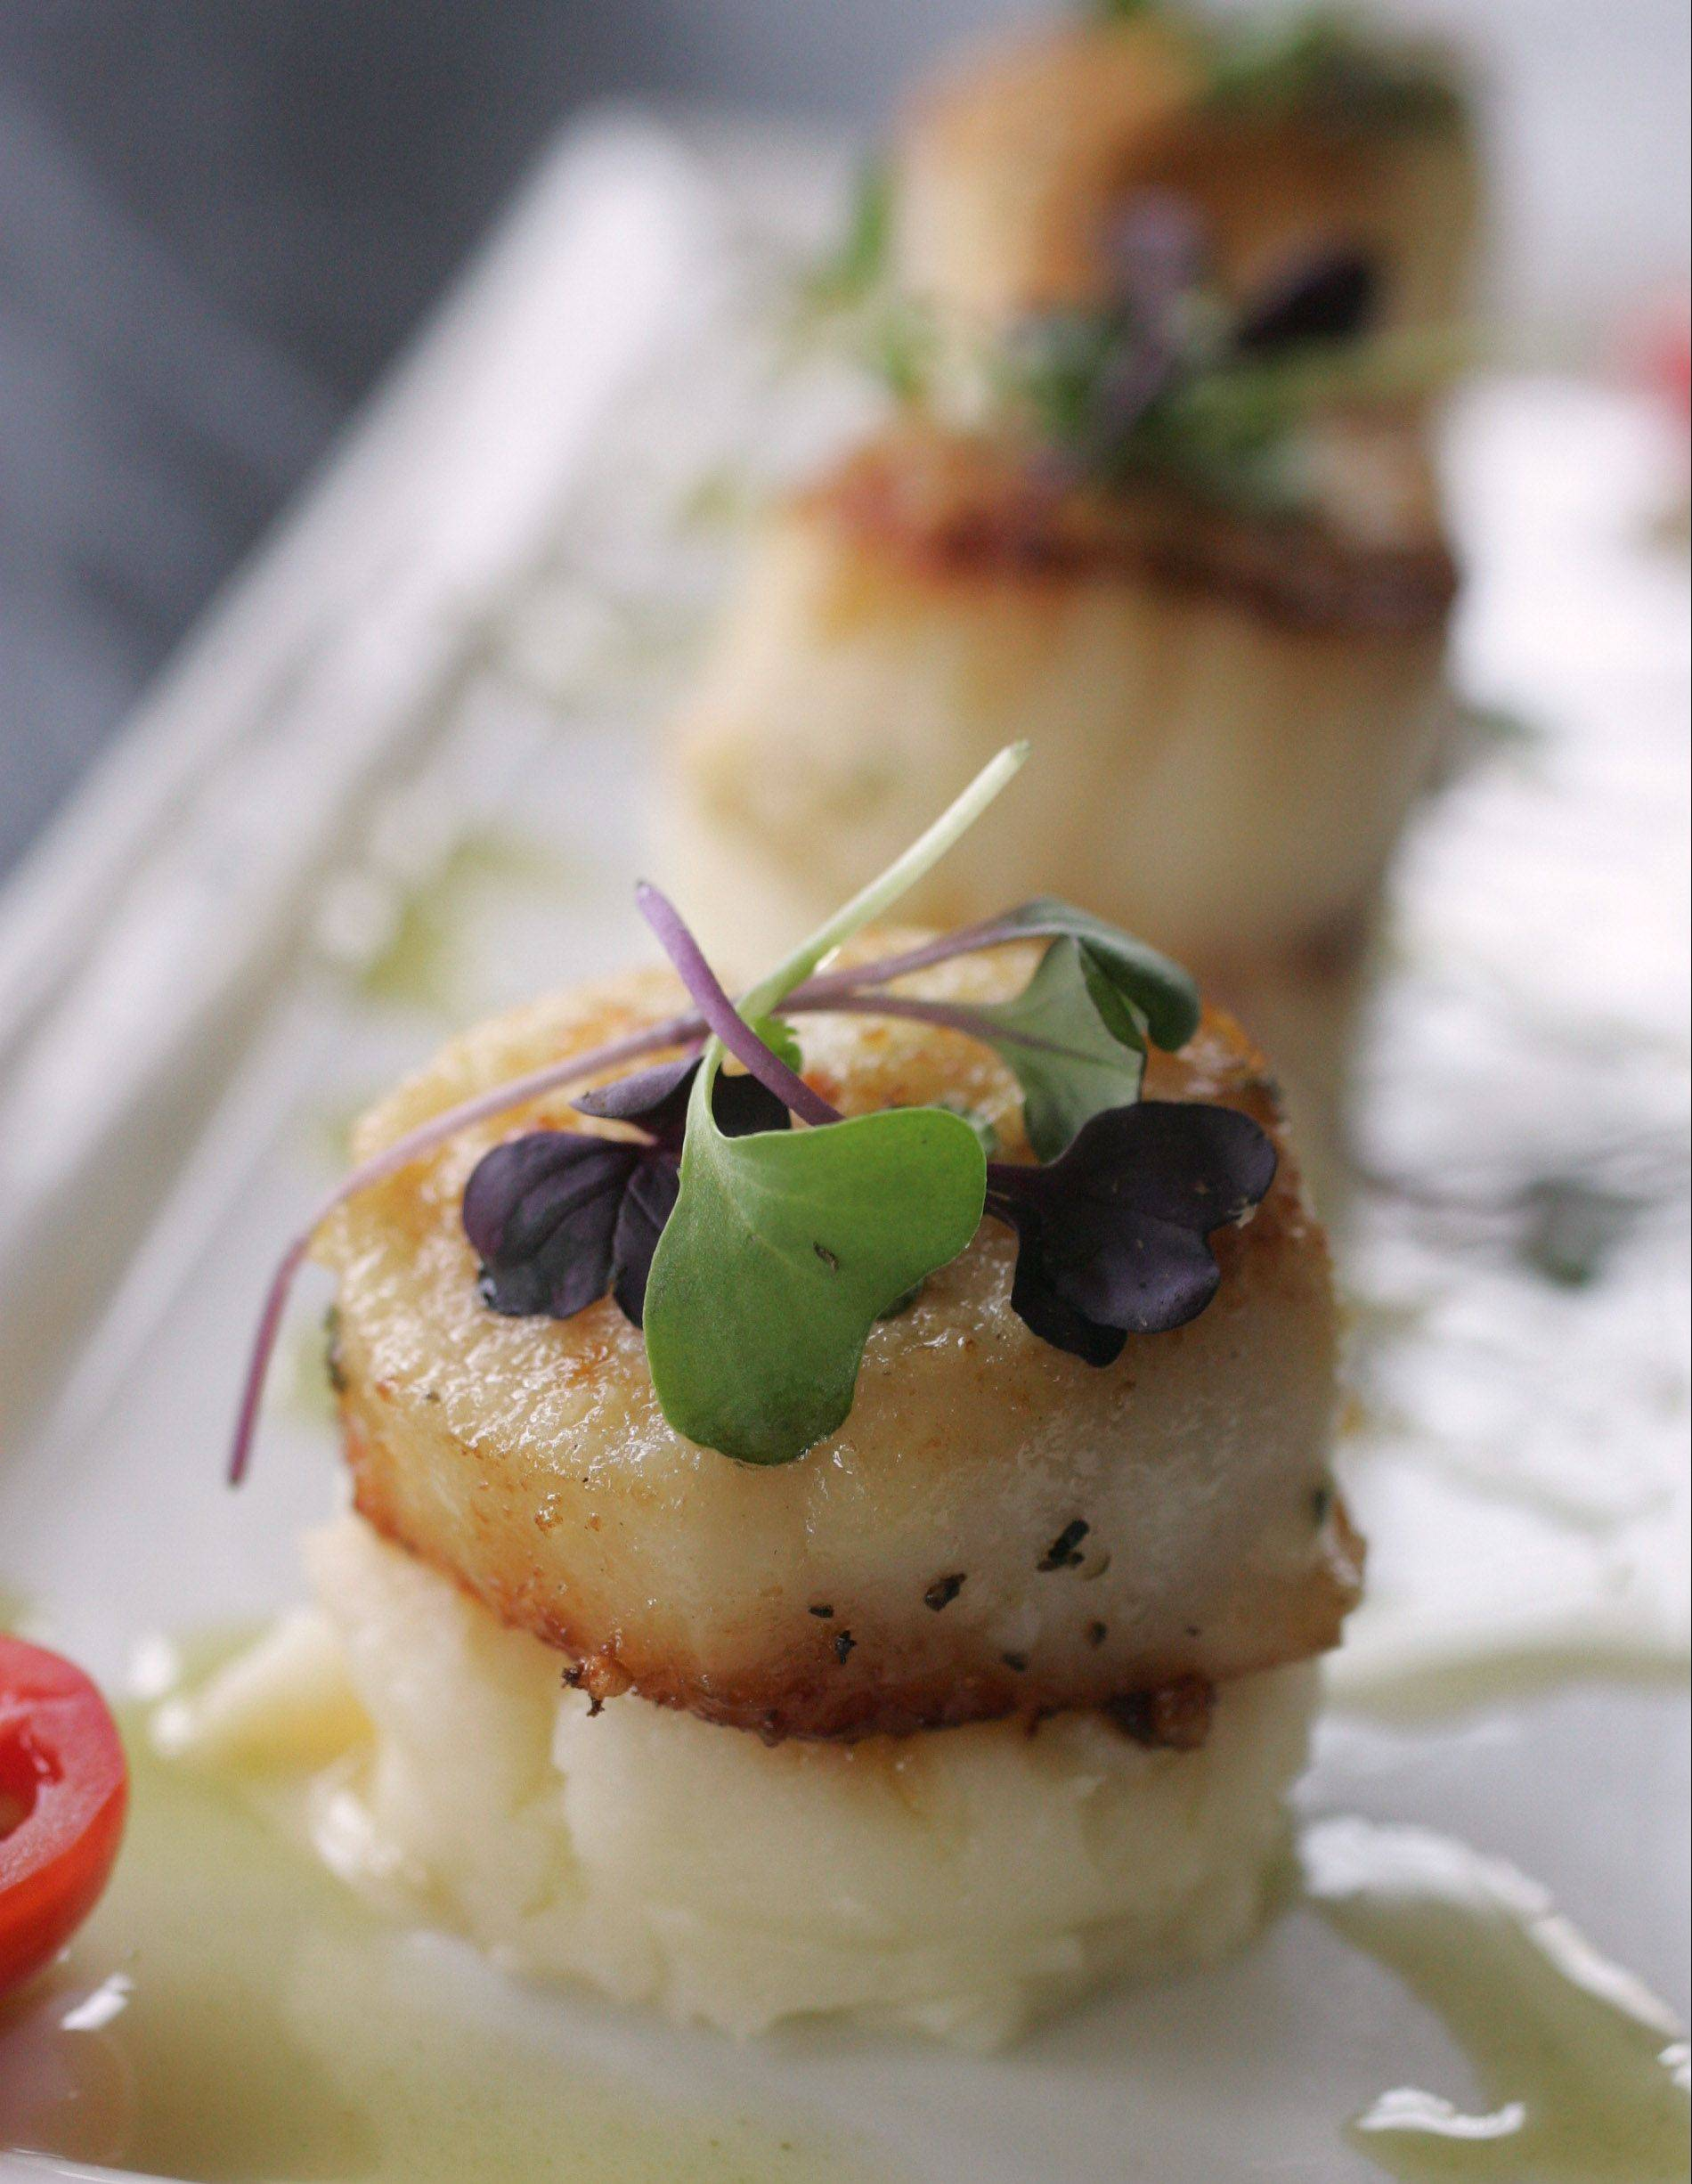 The fresh-caught scallops at Middleton's On Main prove this new Wauconda eatery serves up more than your average bar food.